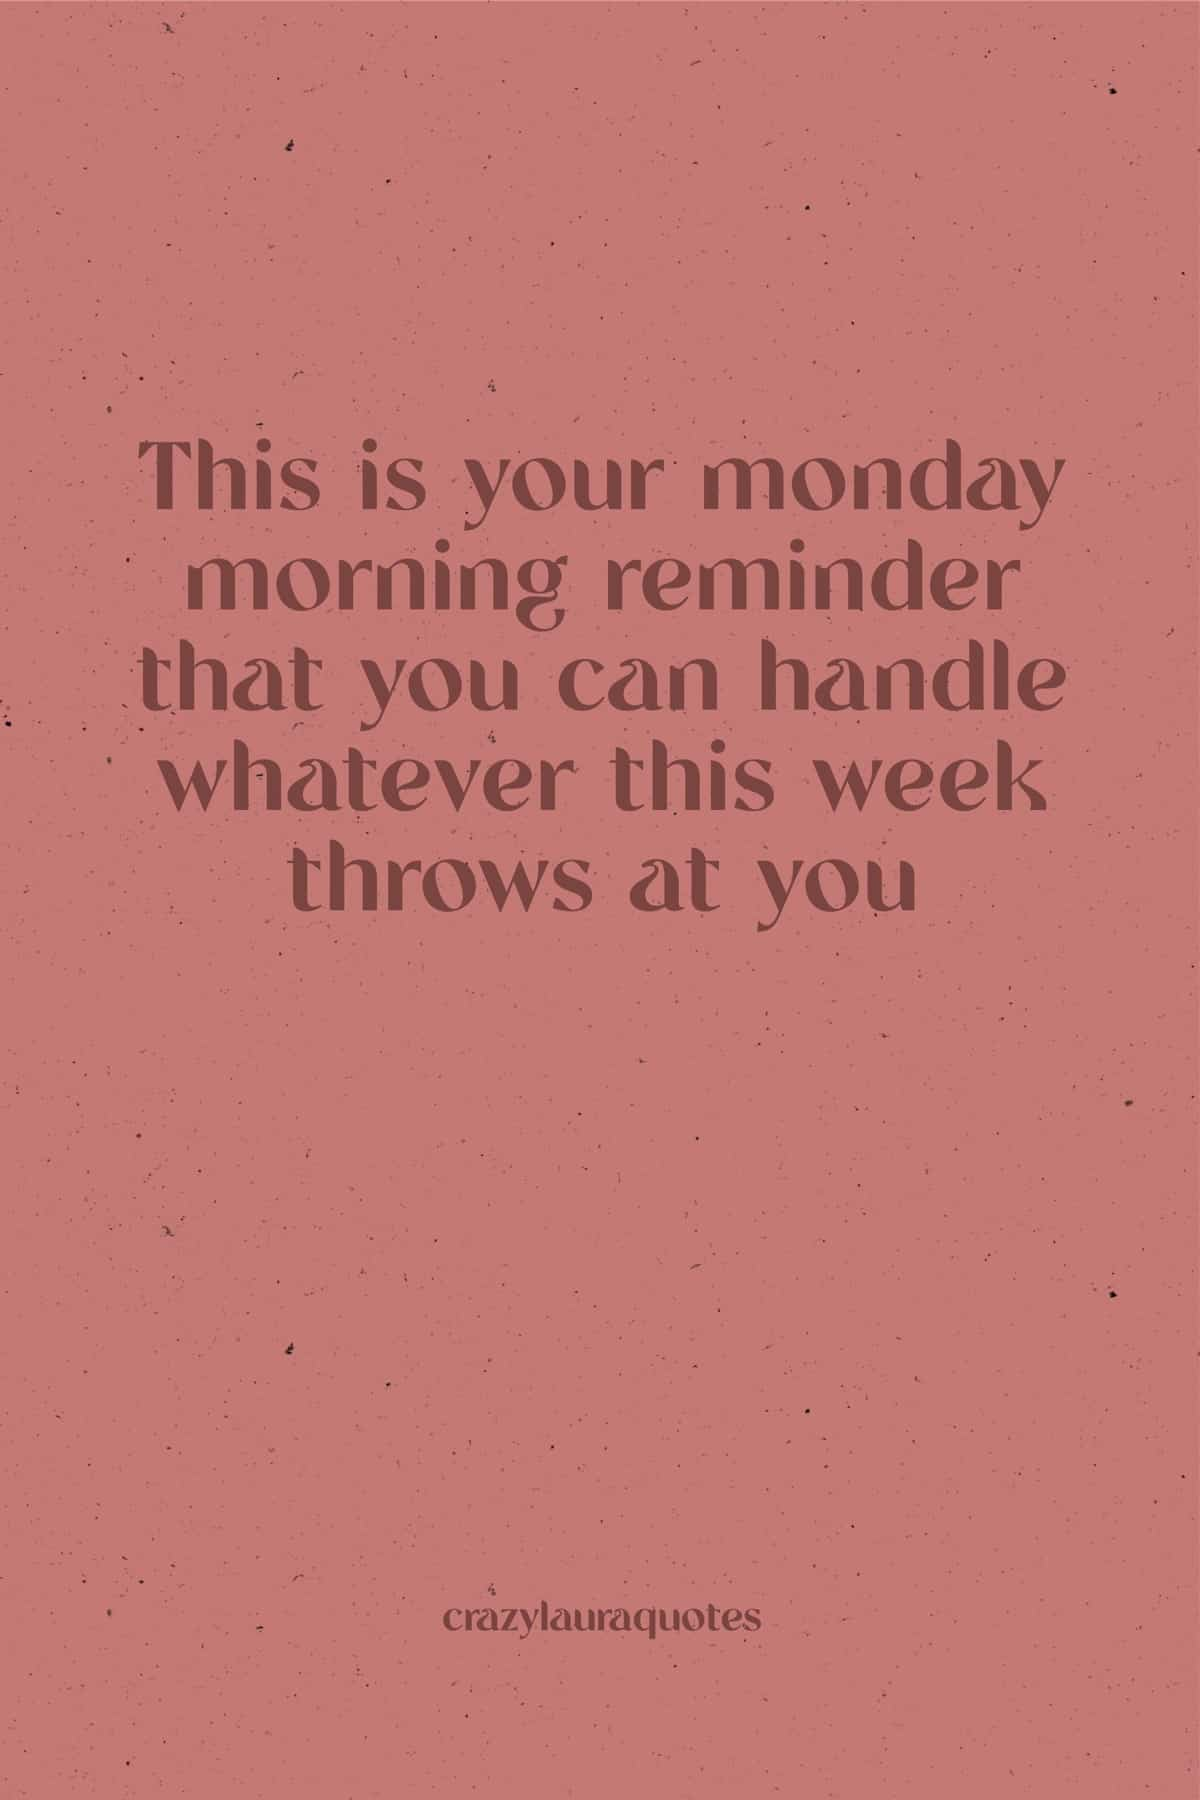 monday morning inspirational short quote